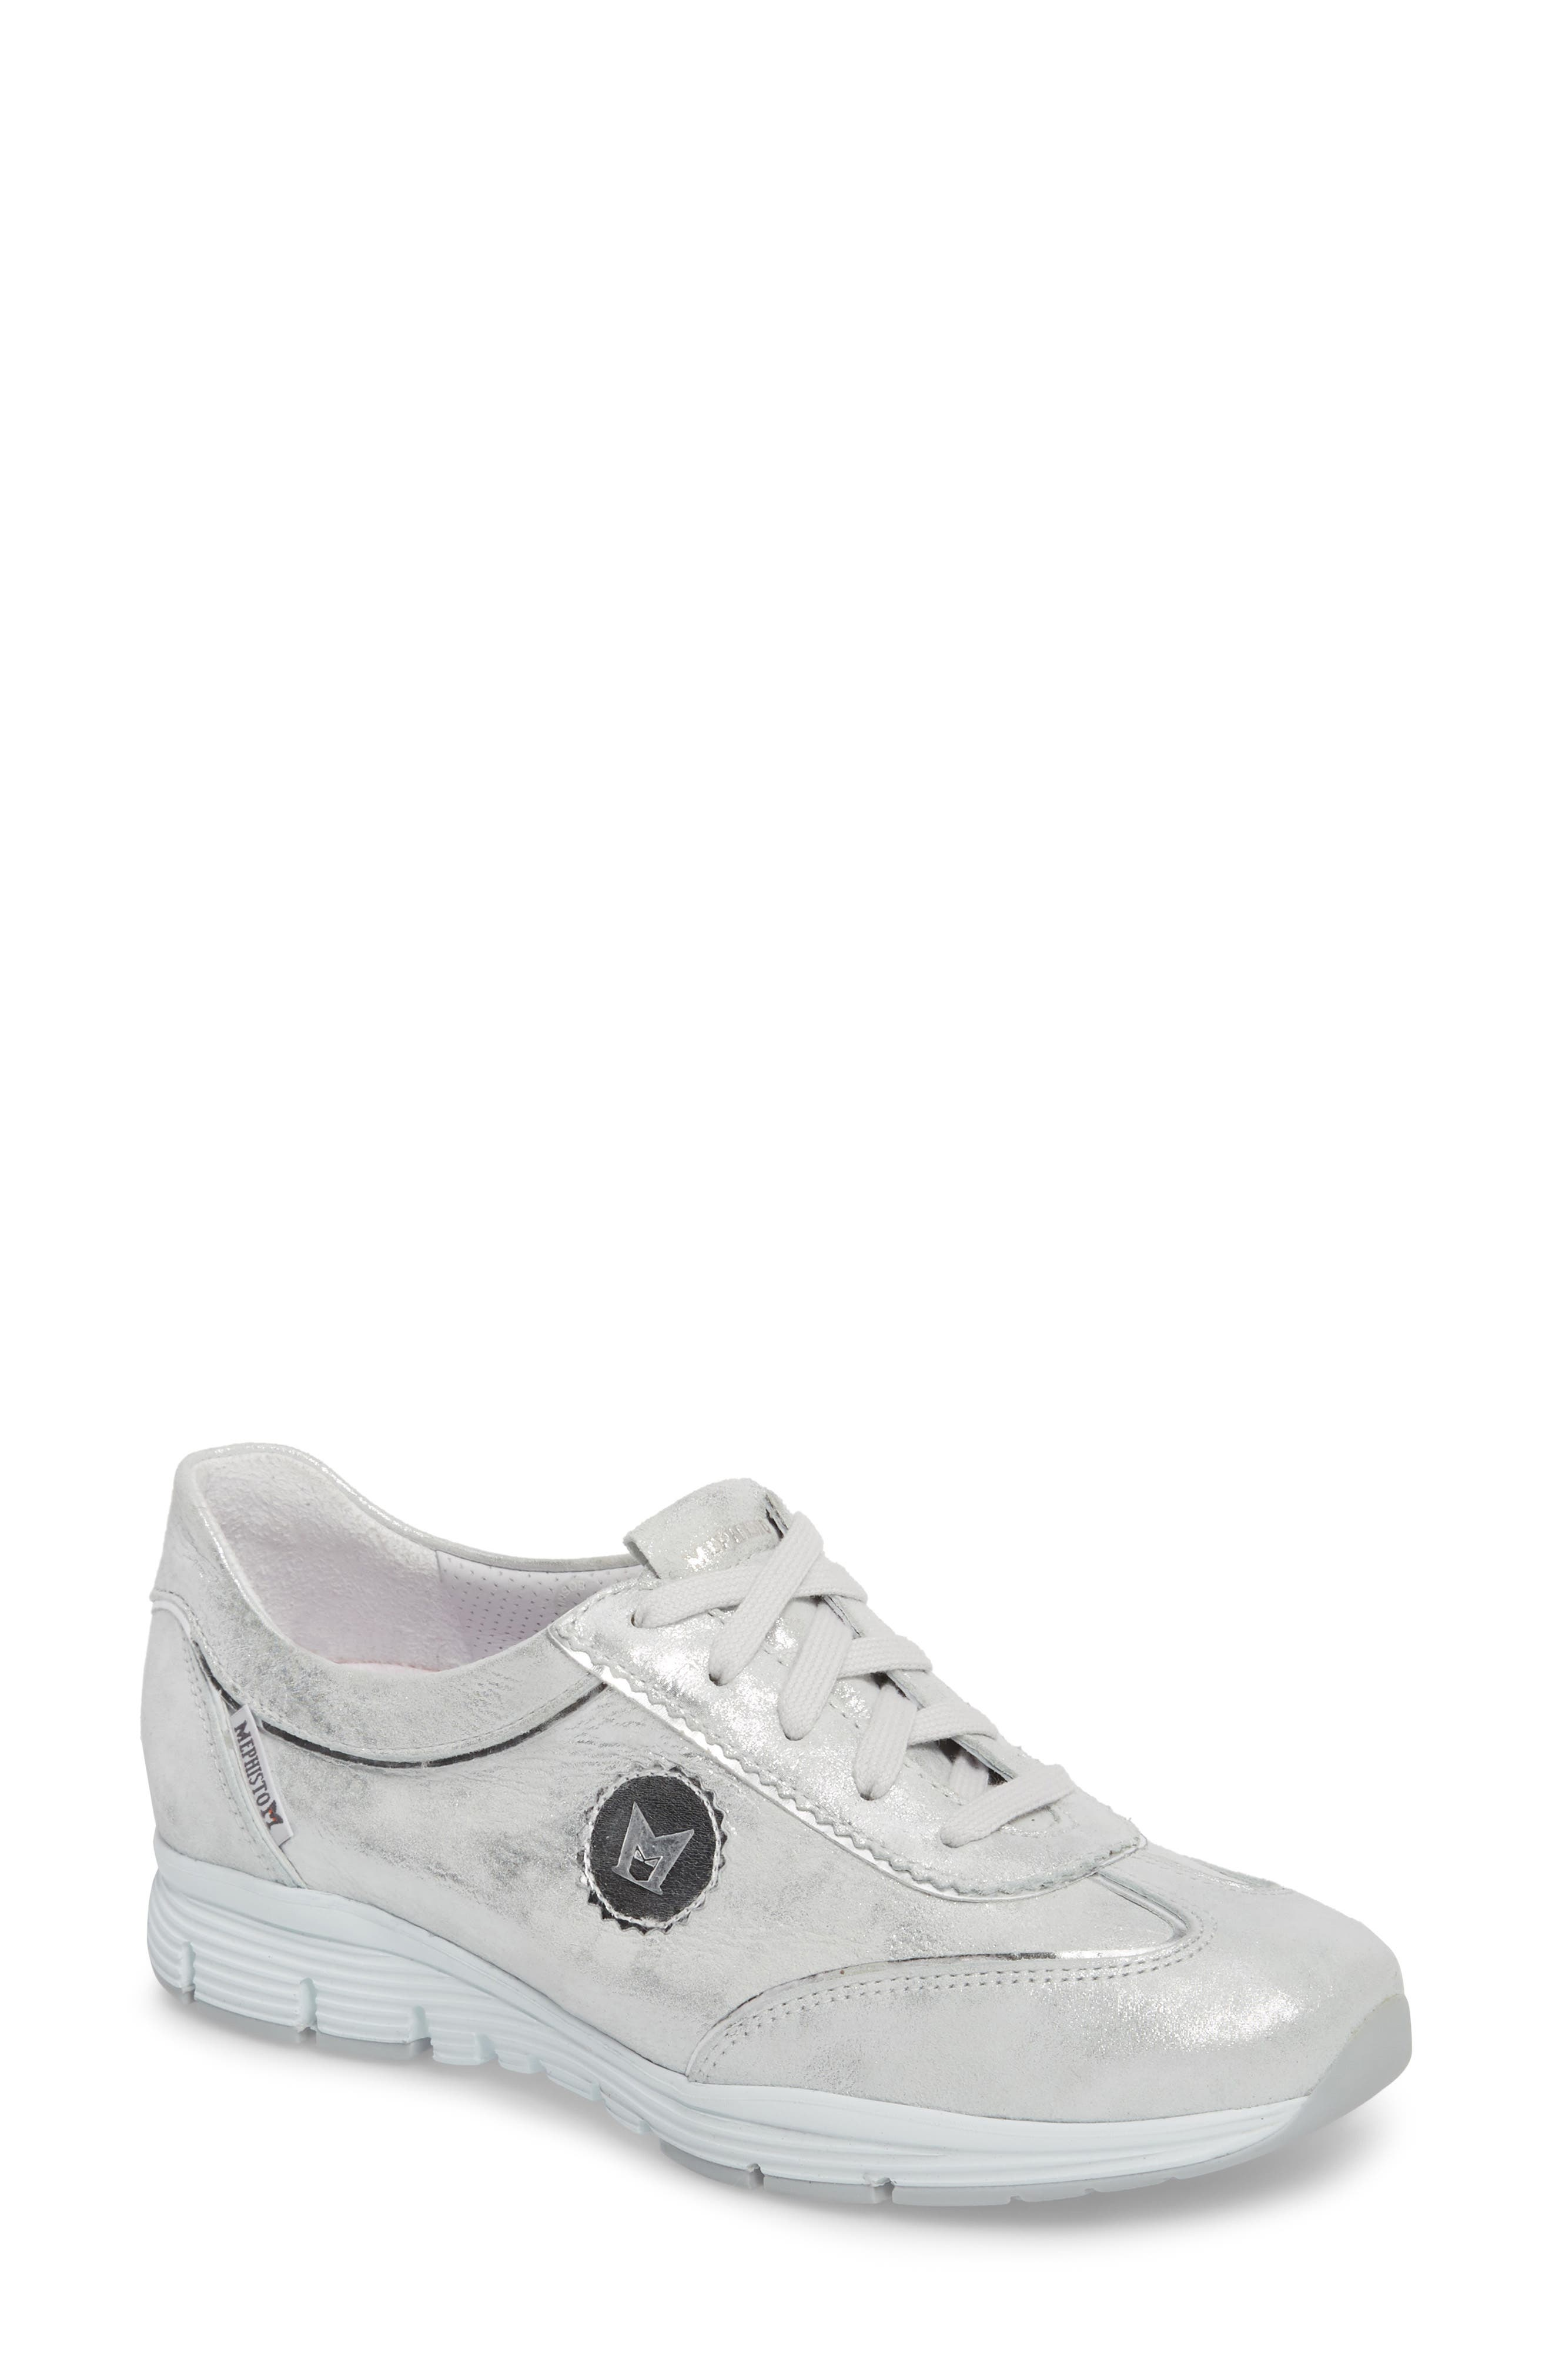 'Yael' Soft-Air Sneaker,                         Main,                         color, Silver Leather